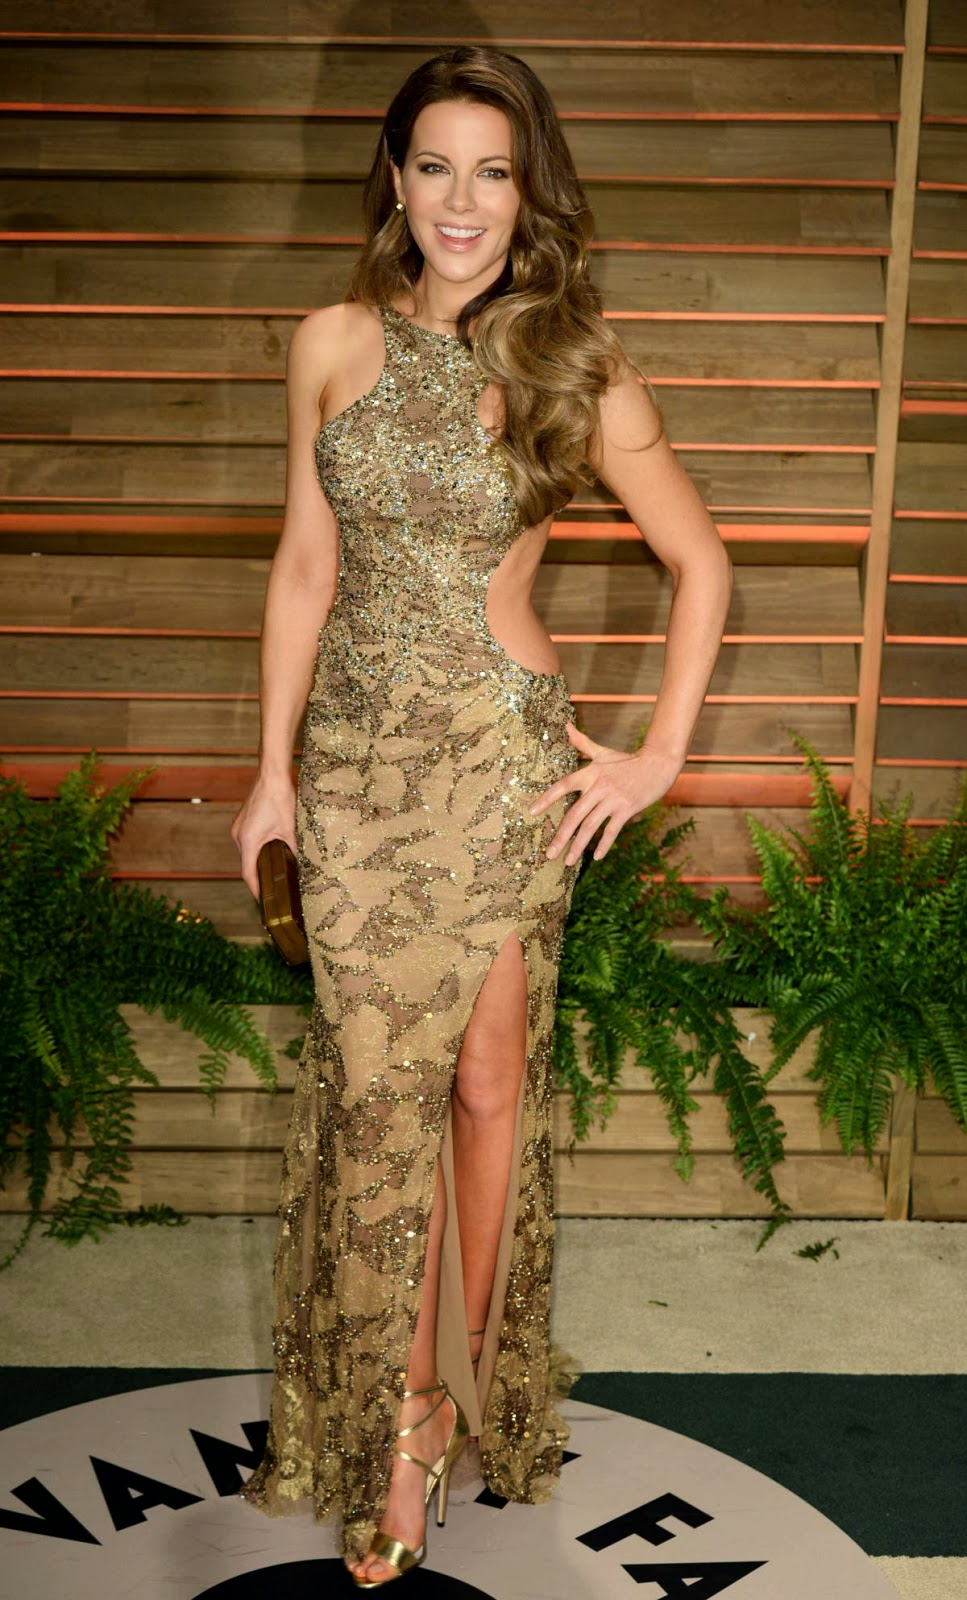 Gorgeous Kate Beckinsale looks great in this tight glamour dress!